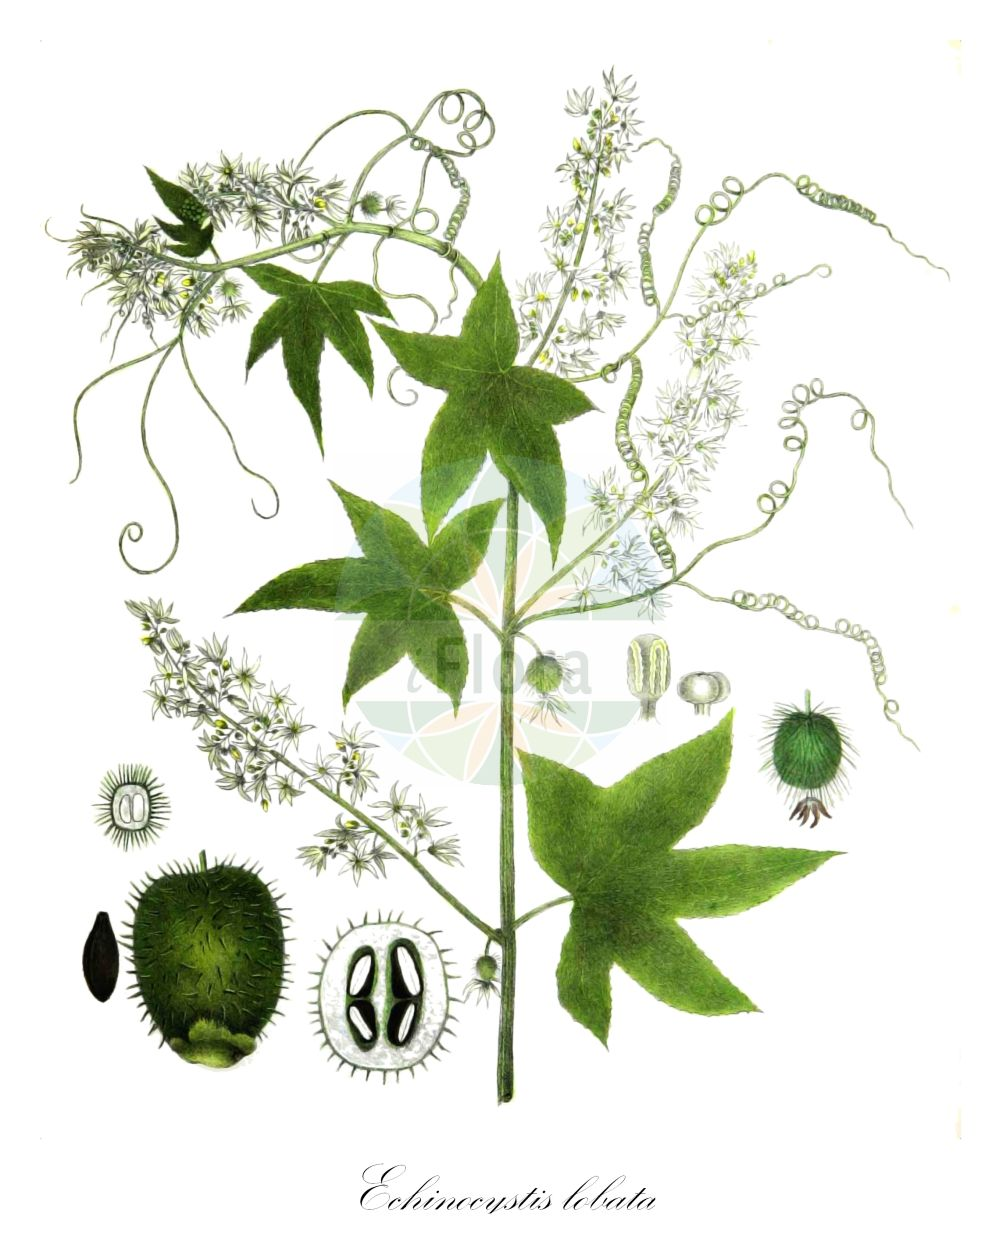 Historische Abbildung von Echinocystis lobata (Stachelgurke - Wild Cucumber). Das Bild zeigt Blatt, Bluete, Frucht und Same. ---- Historical Drawing of Echinocystis lobata (Stachelgurke - Wild Cucumber).The image is showing leaf, flower, fruit and seed.(Echinocystis lobata,Stachelgurke,Wild Cucumber,Echinocystis echinata,Sicyos lobatus,Gelappte Igelgurke,Wild Balsam Apple,Echinocystis,Stachelgurke,Wild Cucumber,Cucurbitaceae,Kuerbisgewaechse,Cucurbit family,Blatt,Bluete,Frucht,Same,leaf,flower,fruit,seed,Torrey (1843))